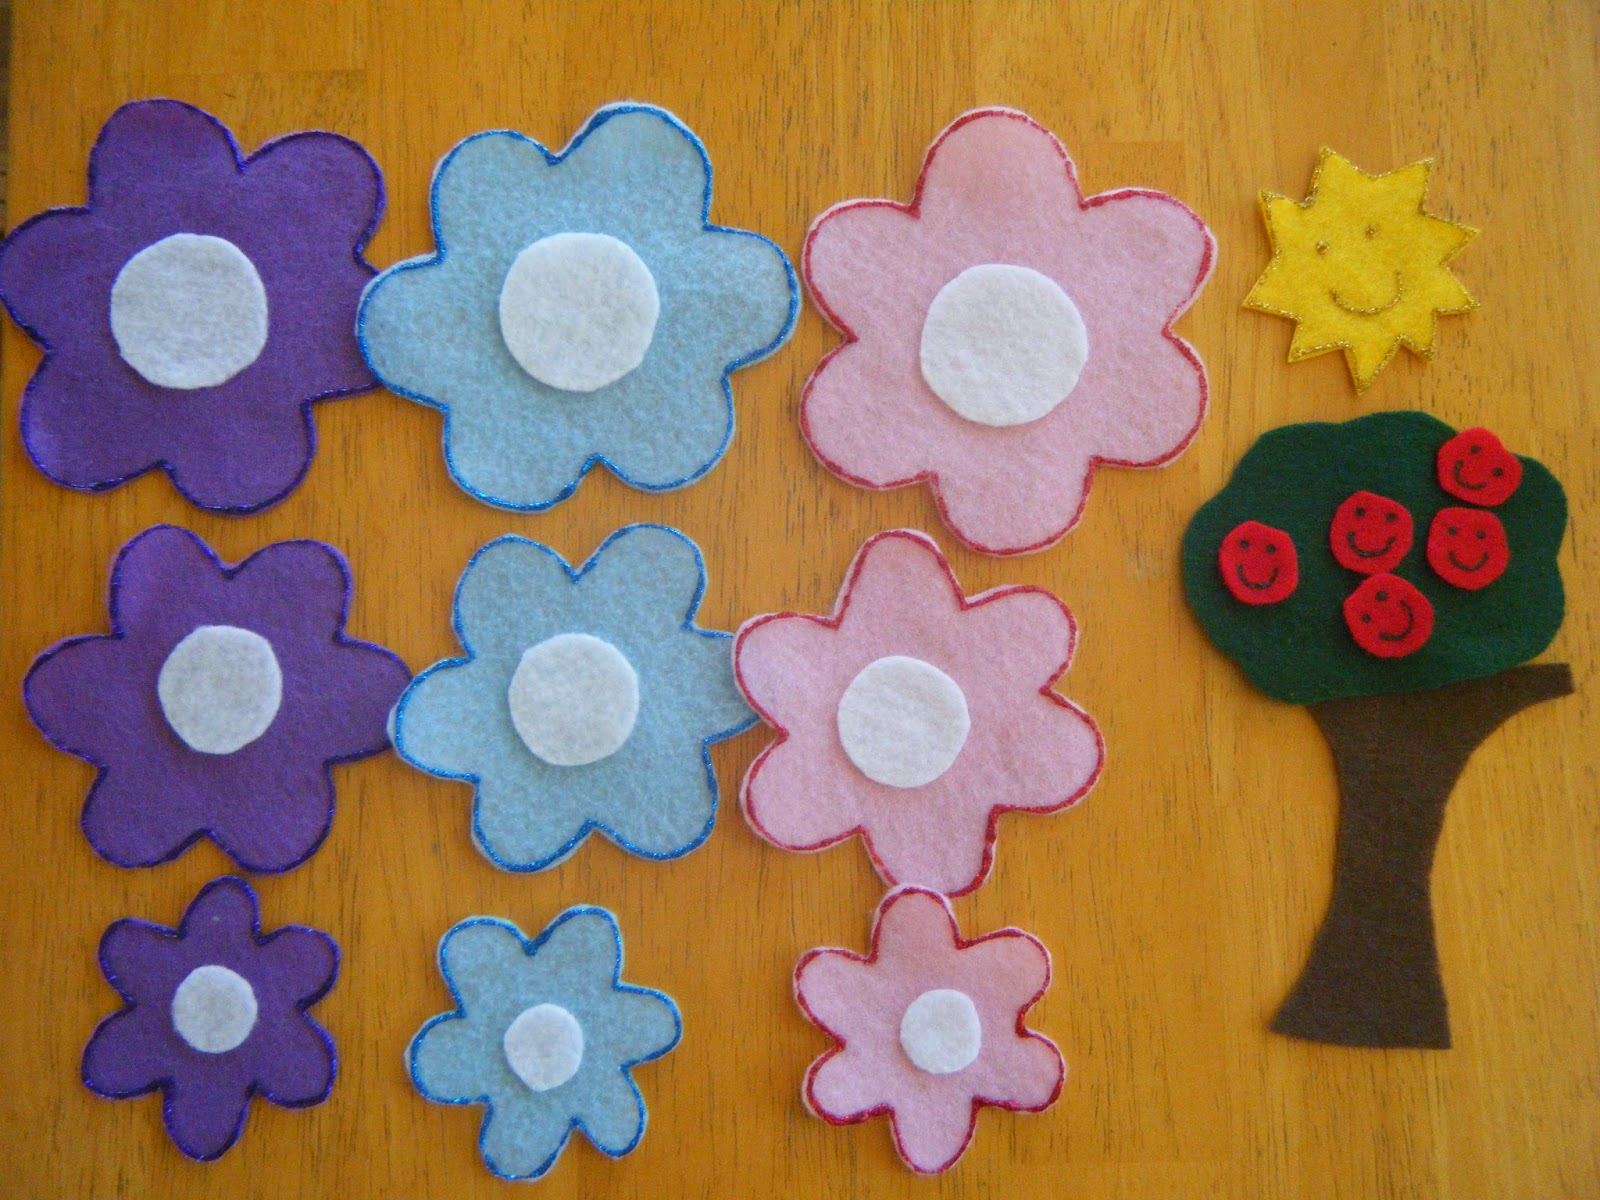 The Following Article Provides Spring Songs With Lyrics To Enjoy With  Preschool Children In Any Early Childhood Environment. In Addition, The  Spring Felt ...